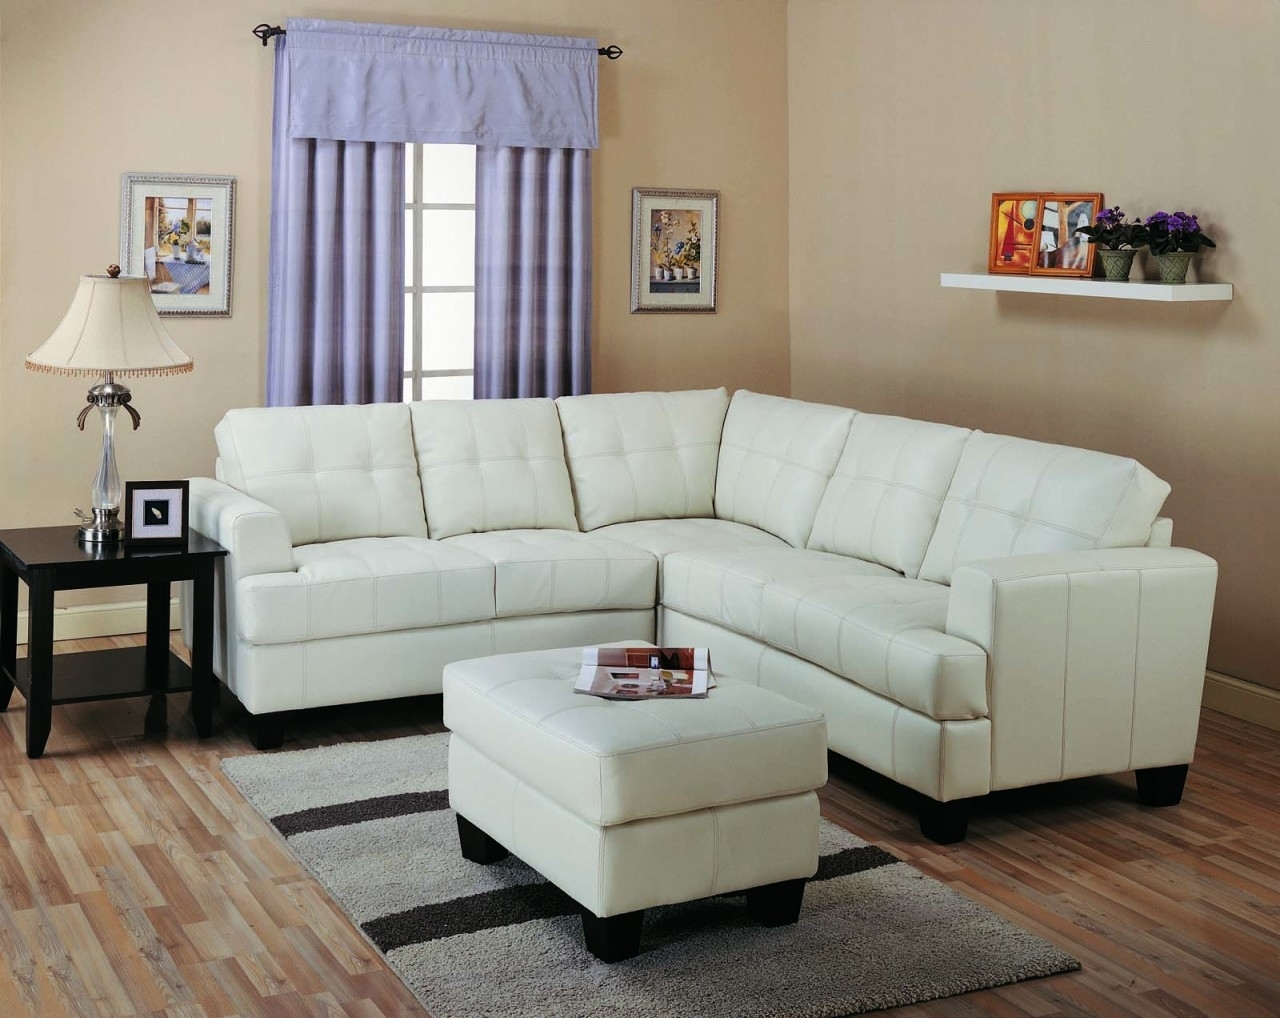 Furniture. Grey Velvet Sectional Sofa With Chaise Using Steel Legs intended for Canada Sectional Sofas for Small Spaces (Image 3 of 10)